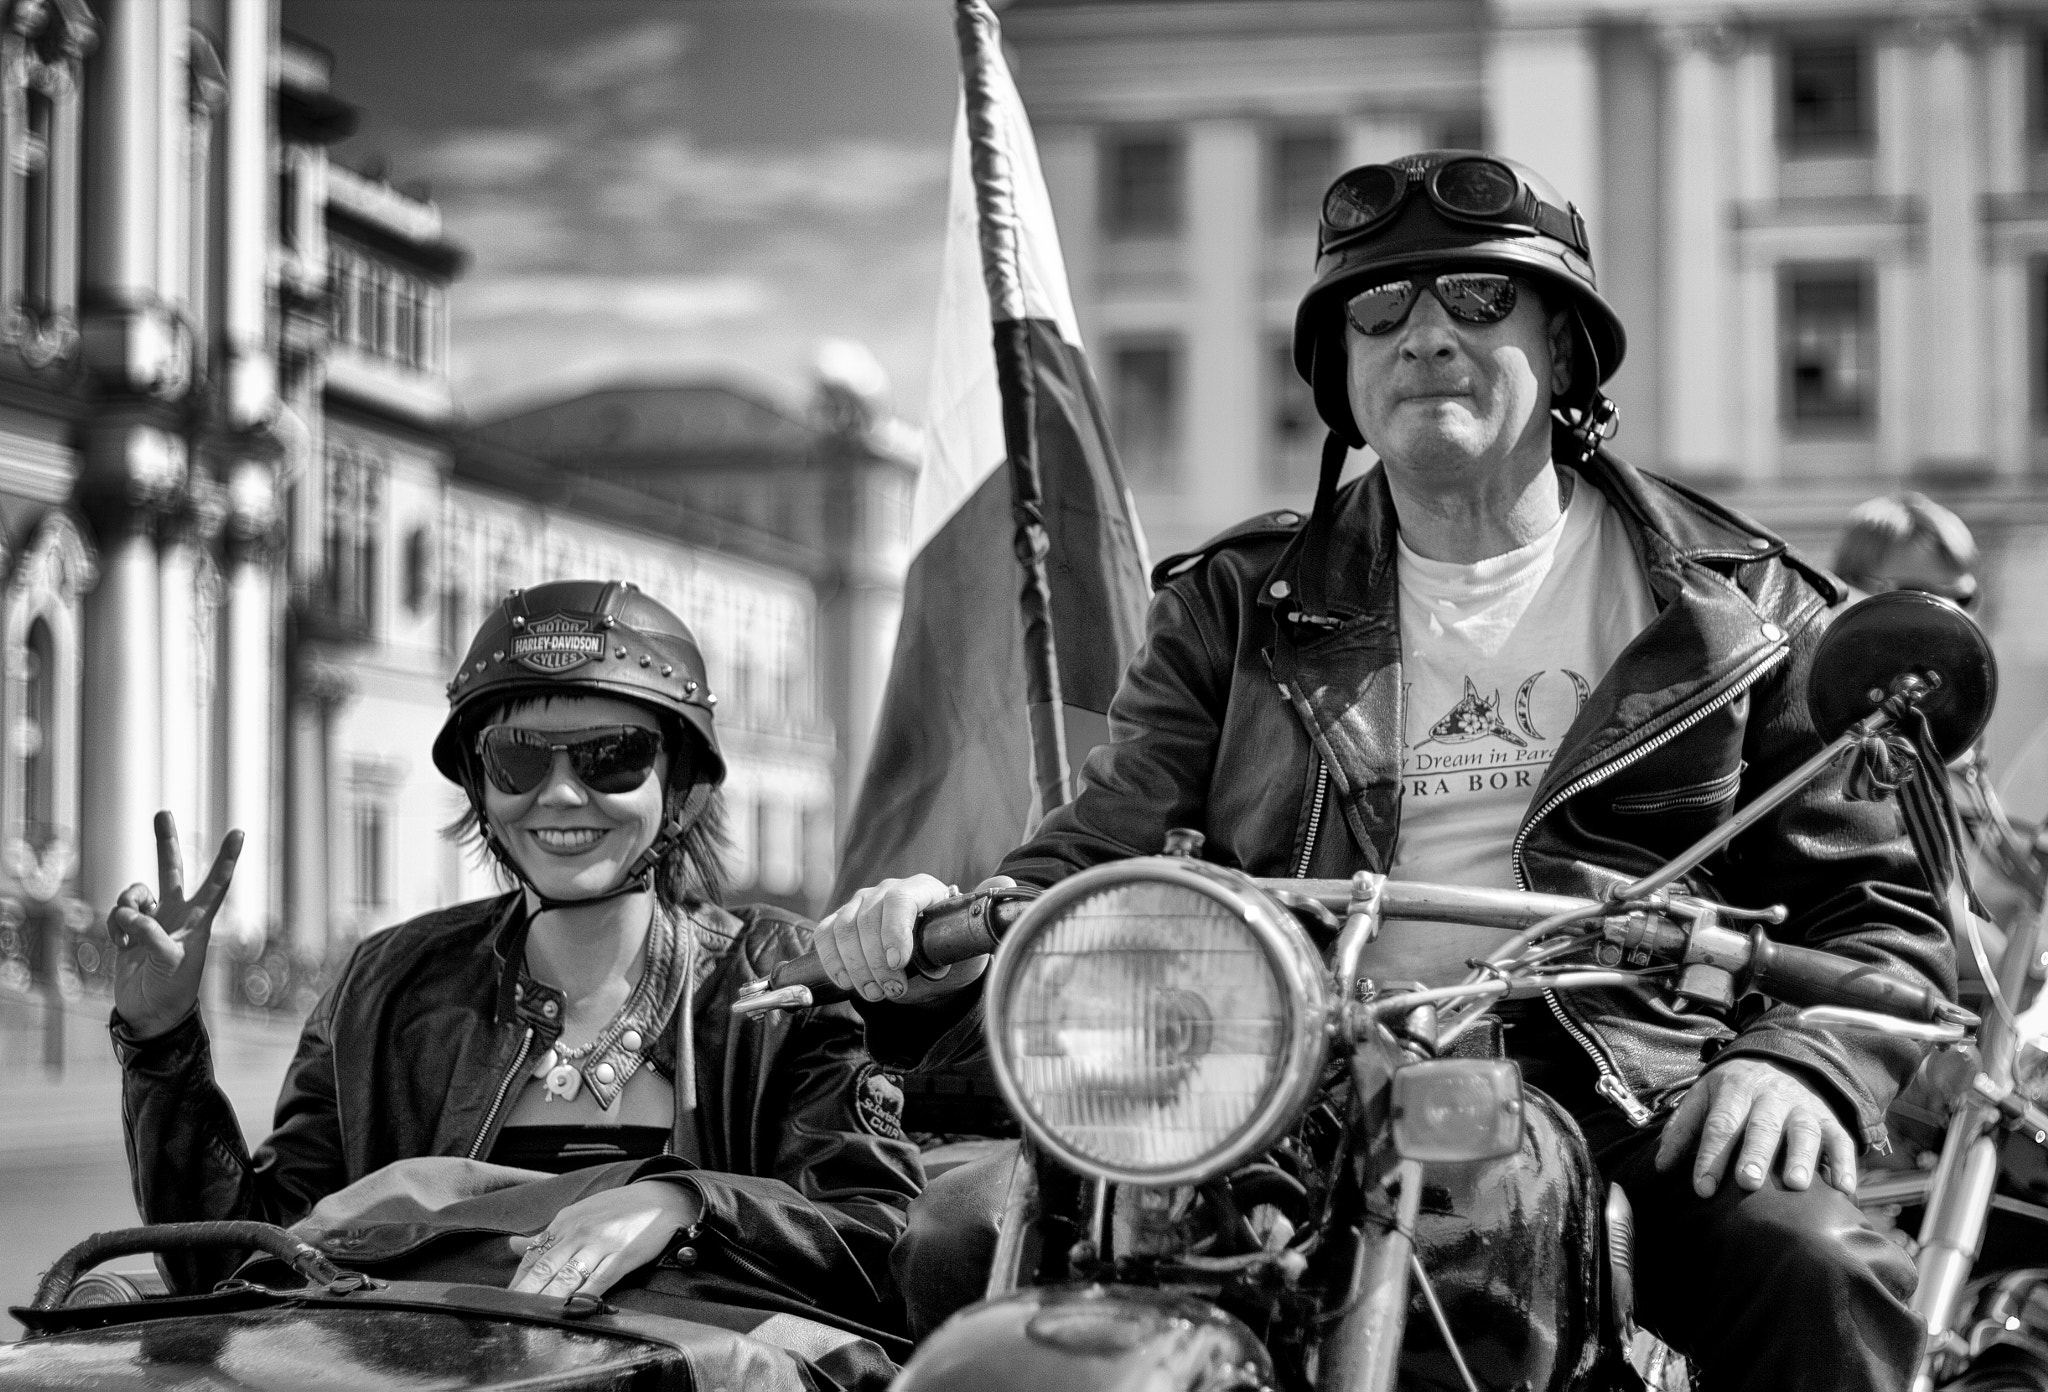 Photograph Sidecar by Andy Beirne on 500px